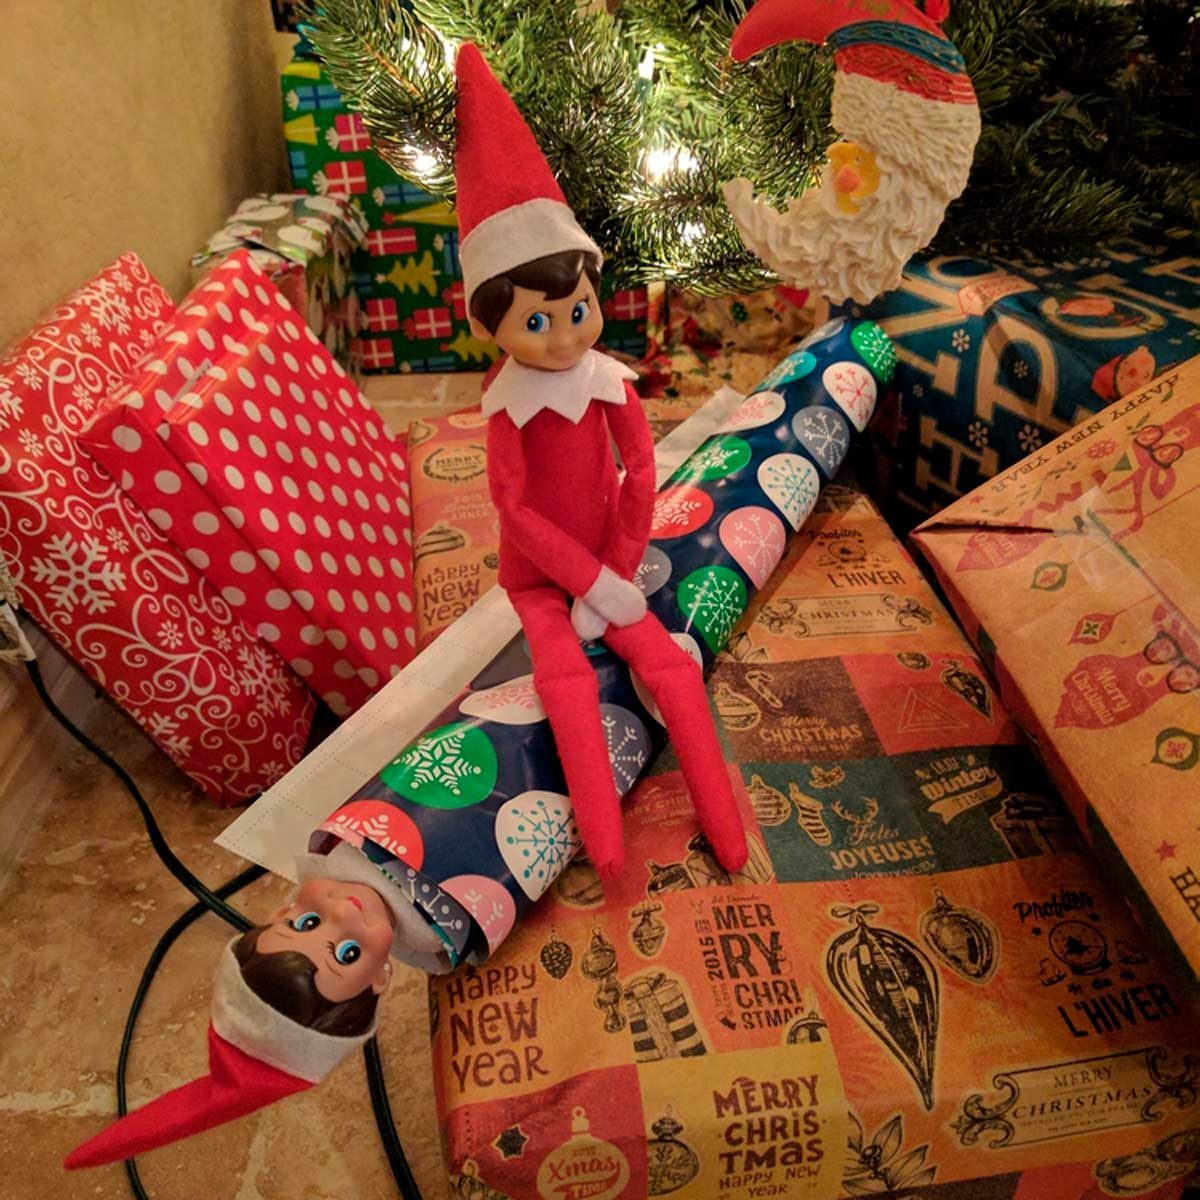 25 Elf at the Shelf Decorations That'll Knock You Out